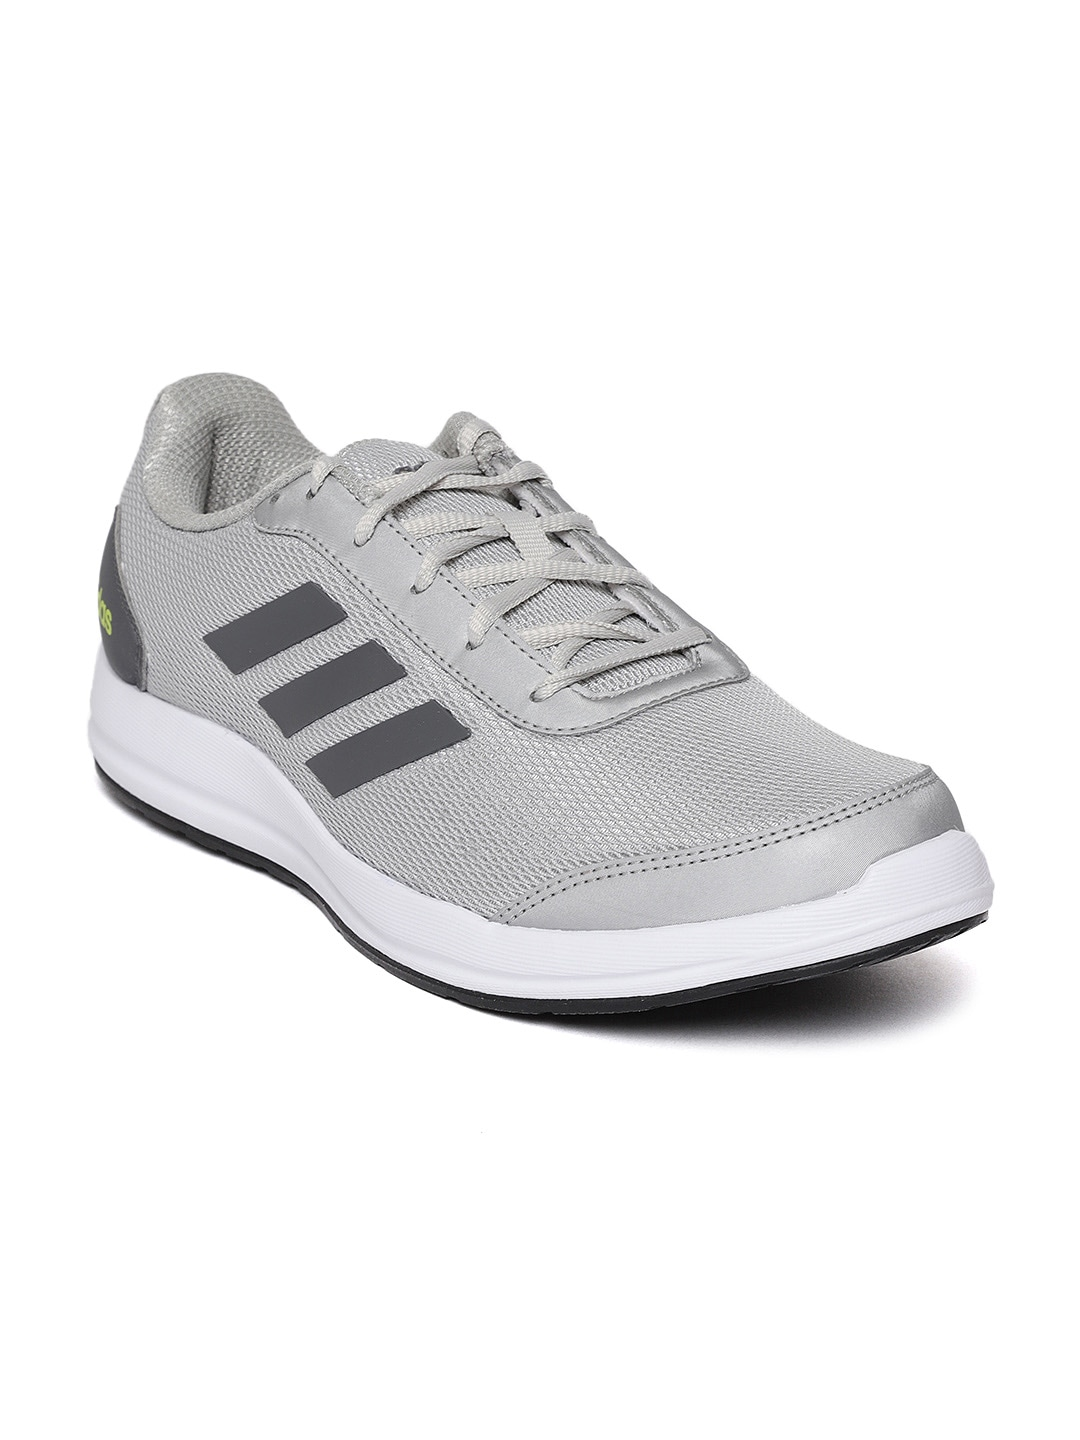 Adidas School Shoes - Buy Adidas School Shoes Online  8f2f26483b3